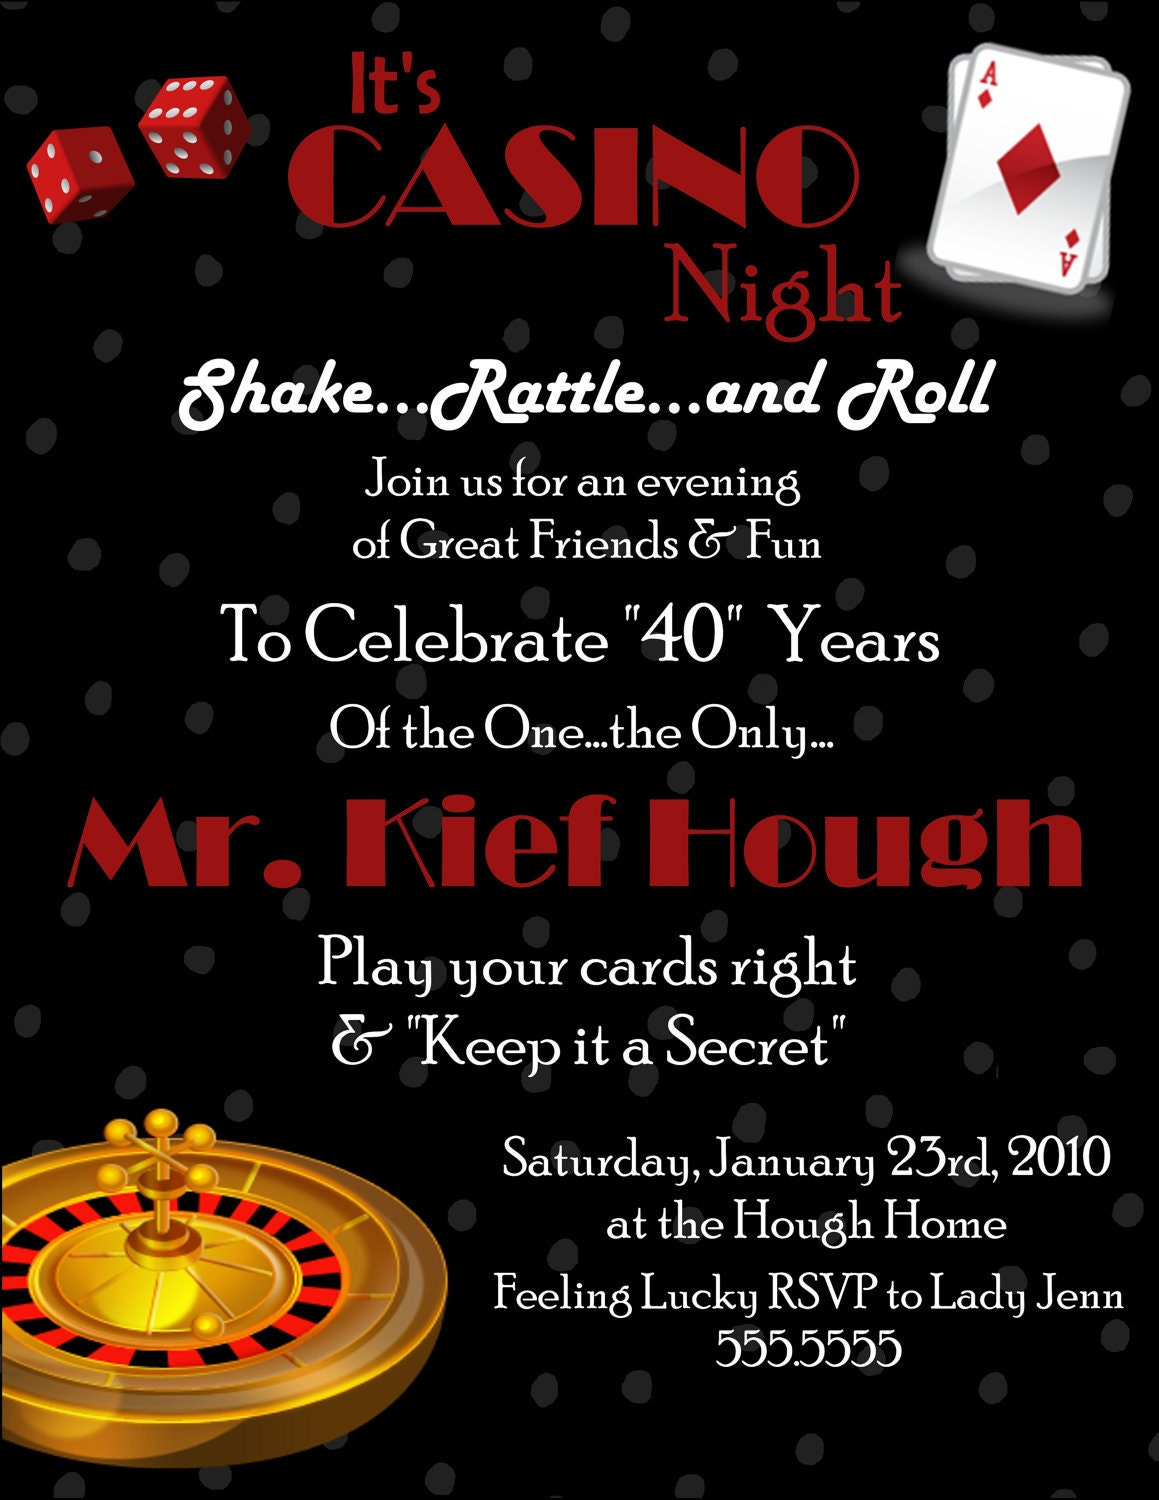 casino digital birthday invitation. Black Bedroom Furniture Sets. Home Design Ideas